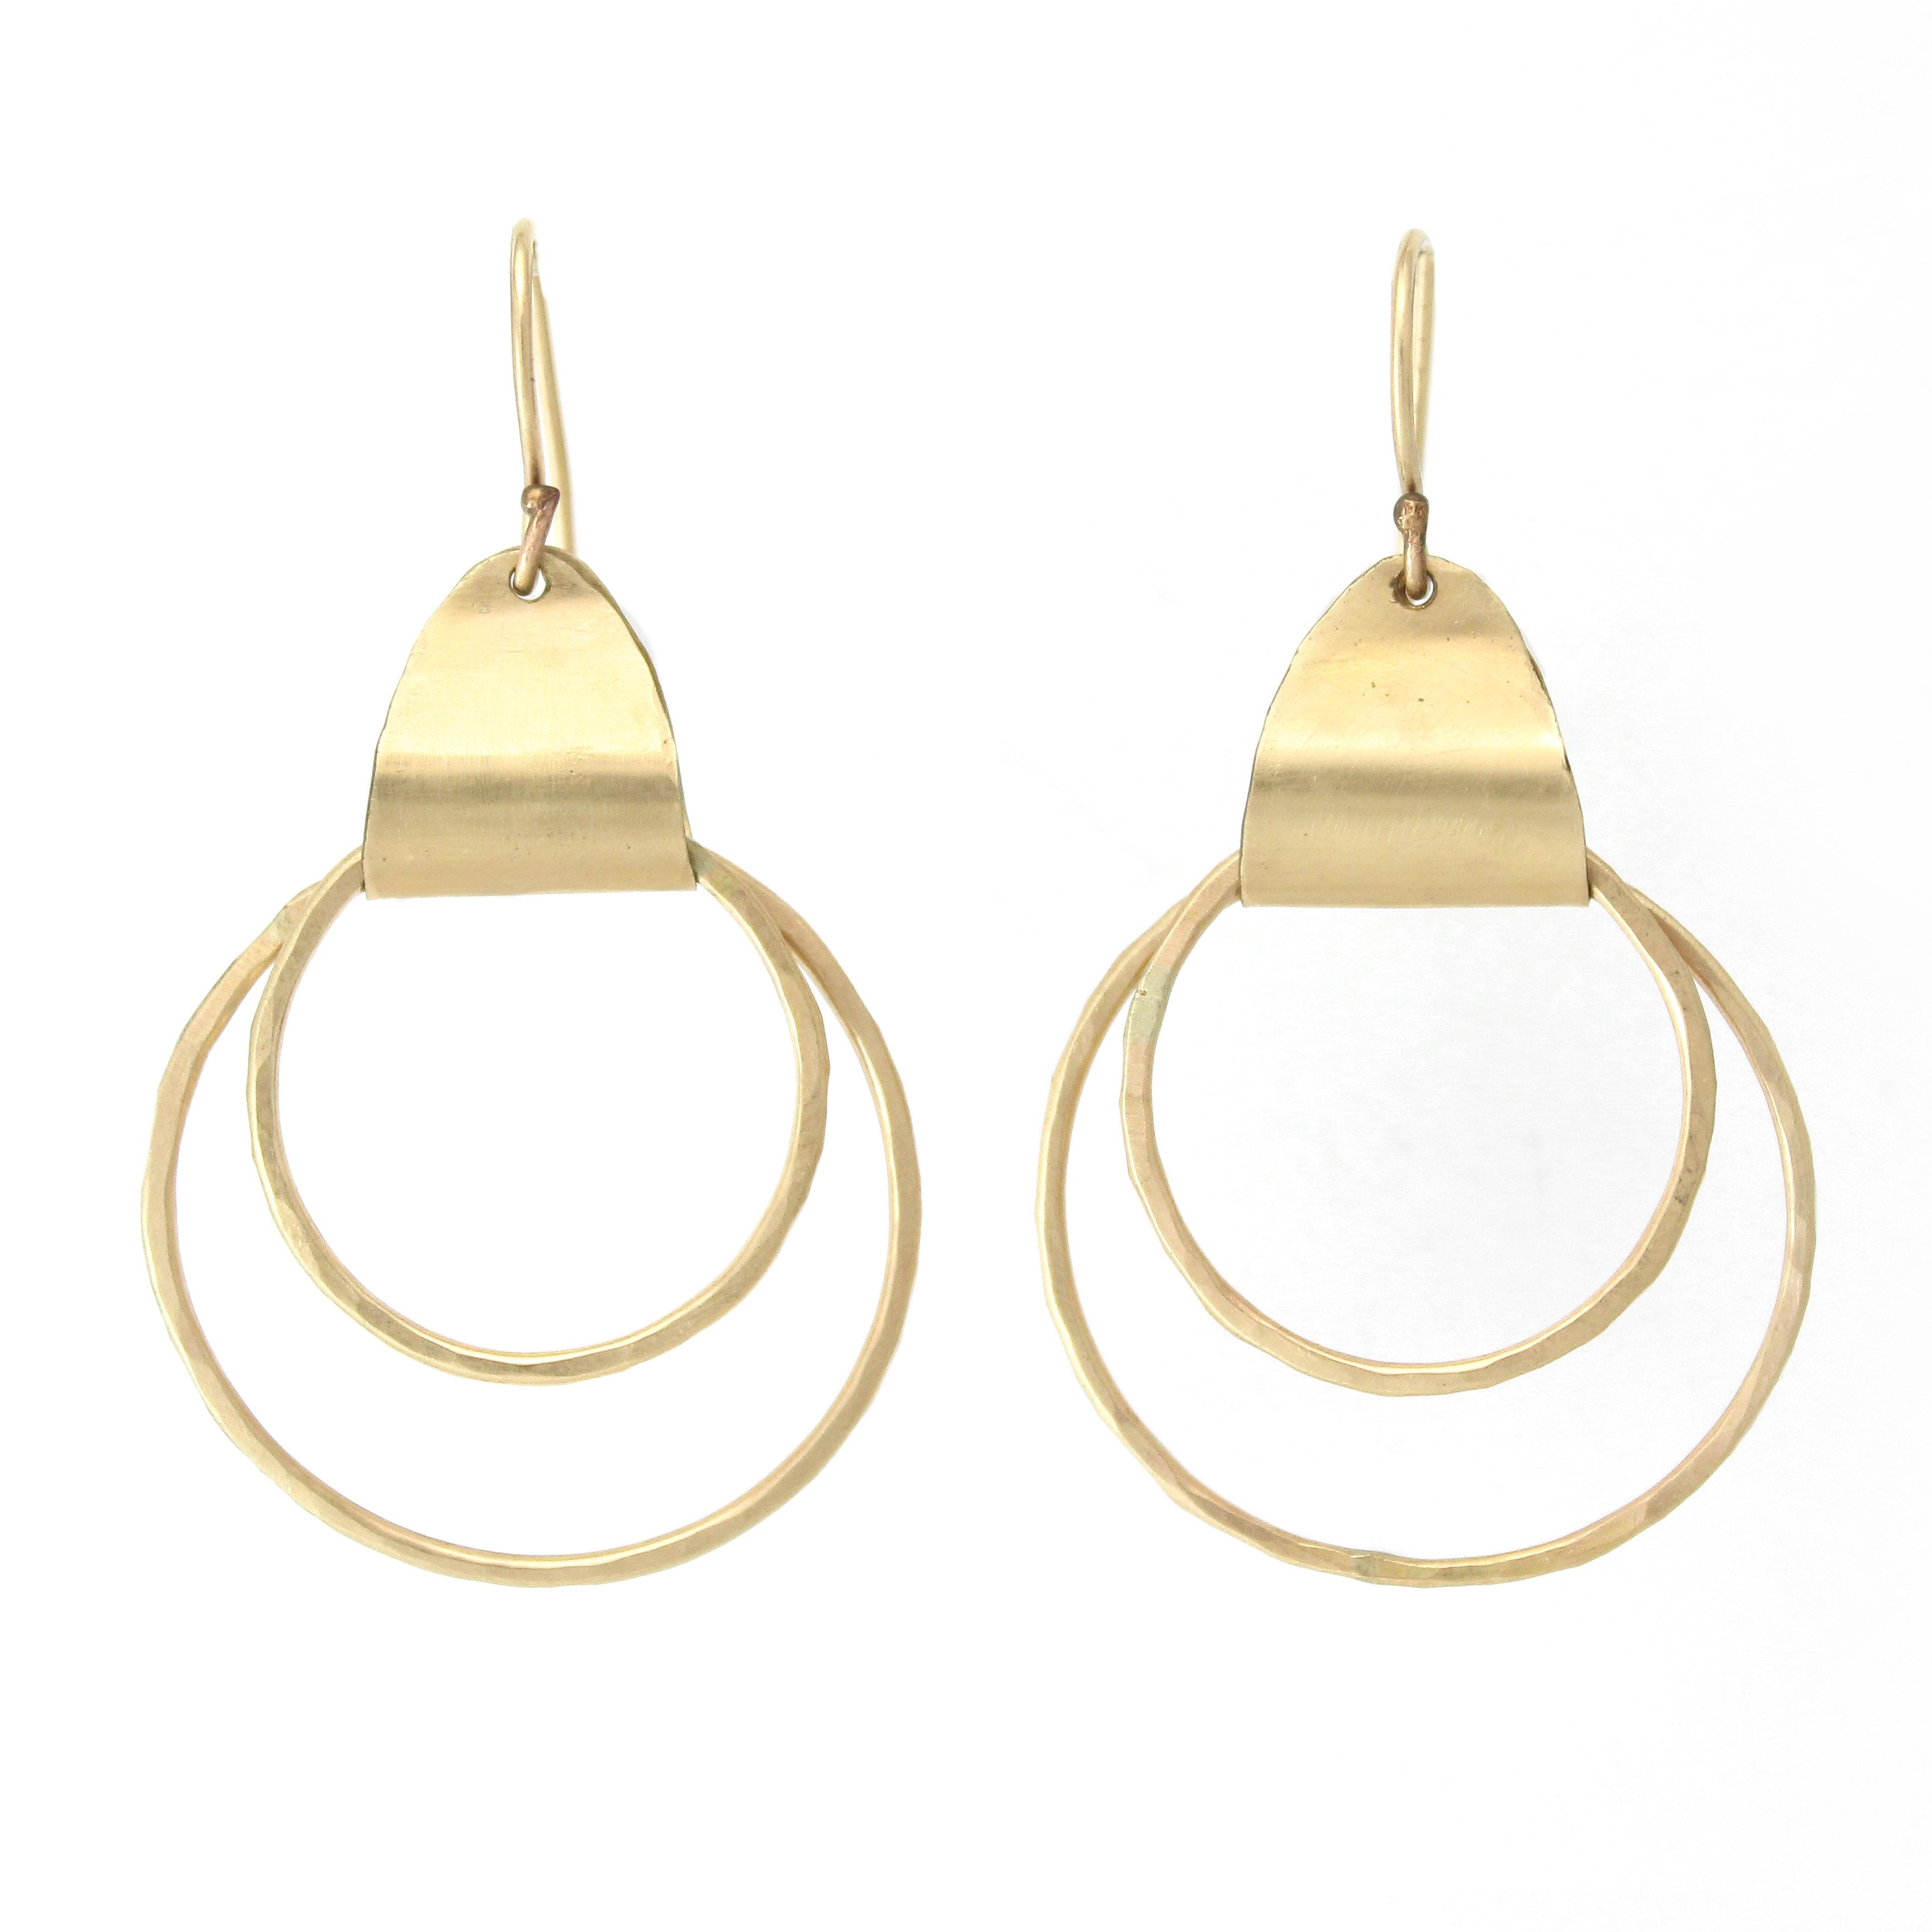 Ancient Egyptian Earrings (Gold filled/Silver) - Shulamit Kanter